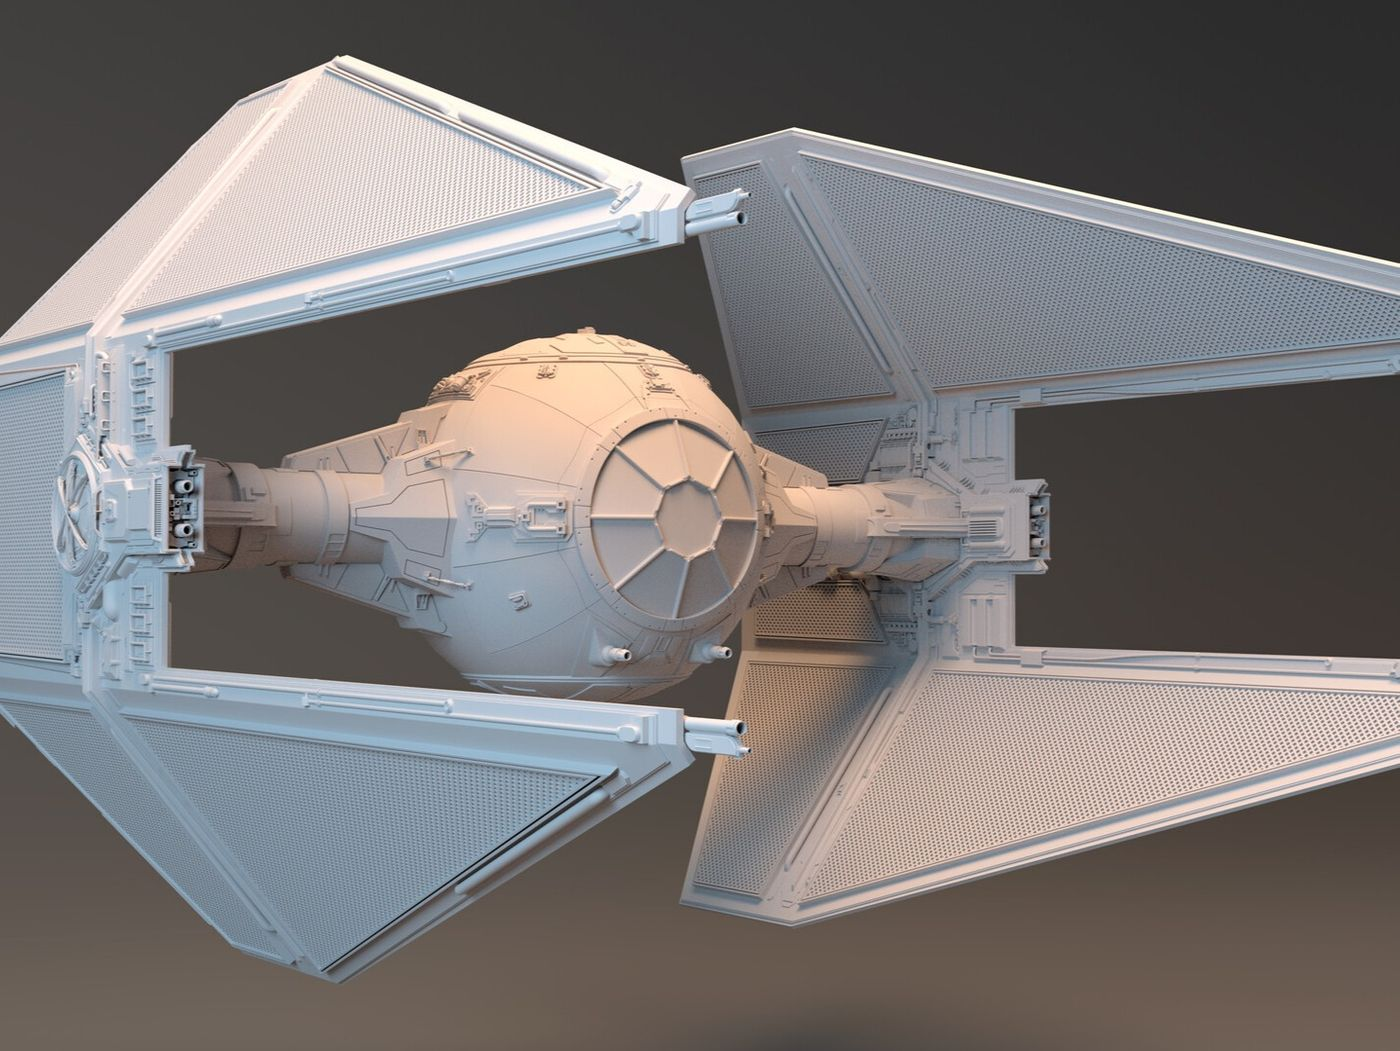 TIE Interceptor (all SubD / with Wireframes)